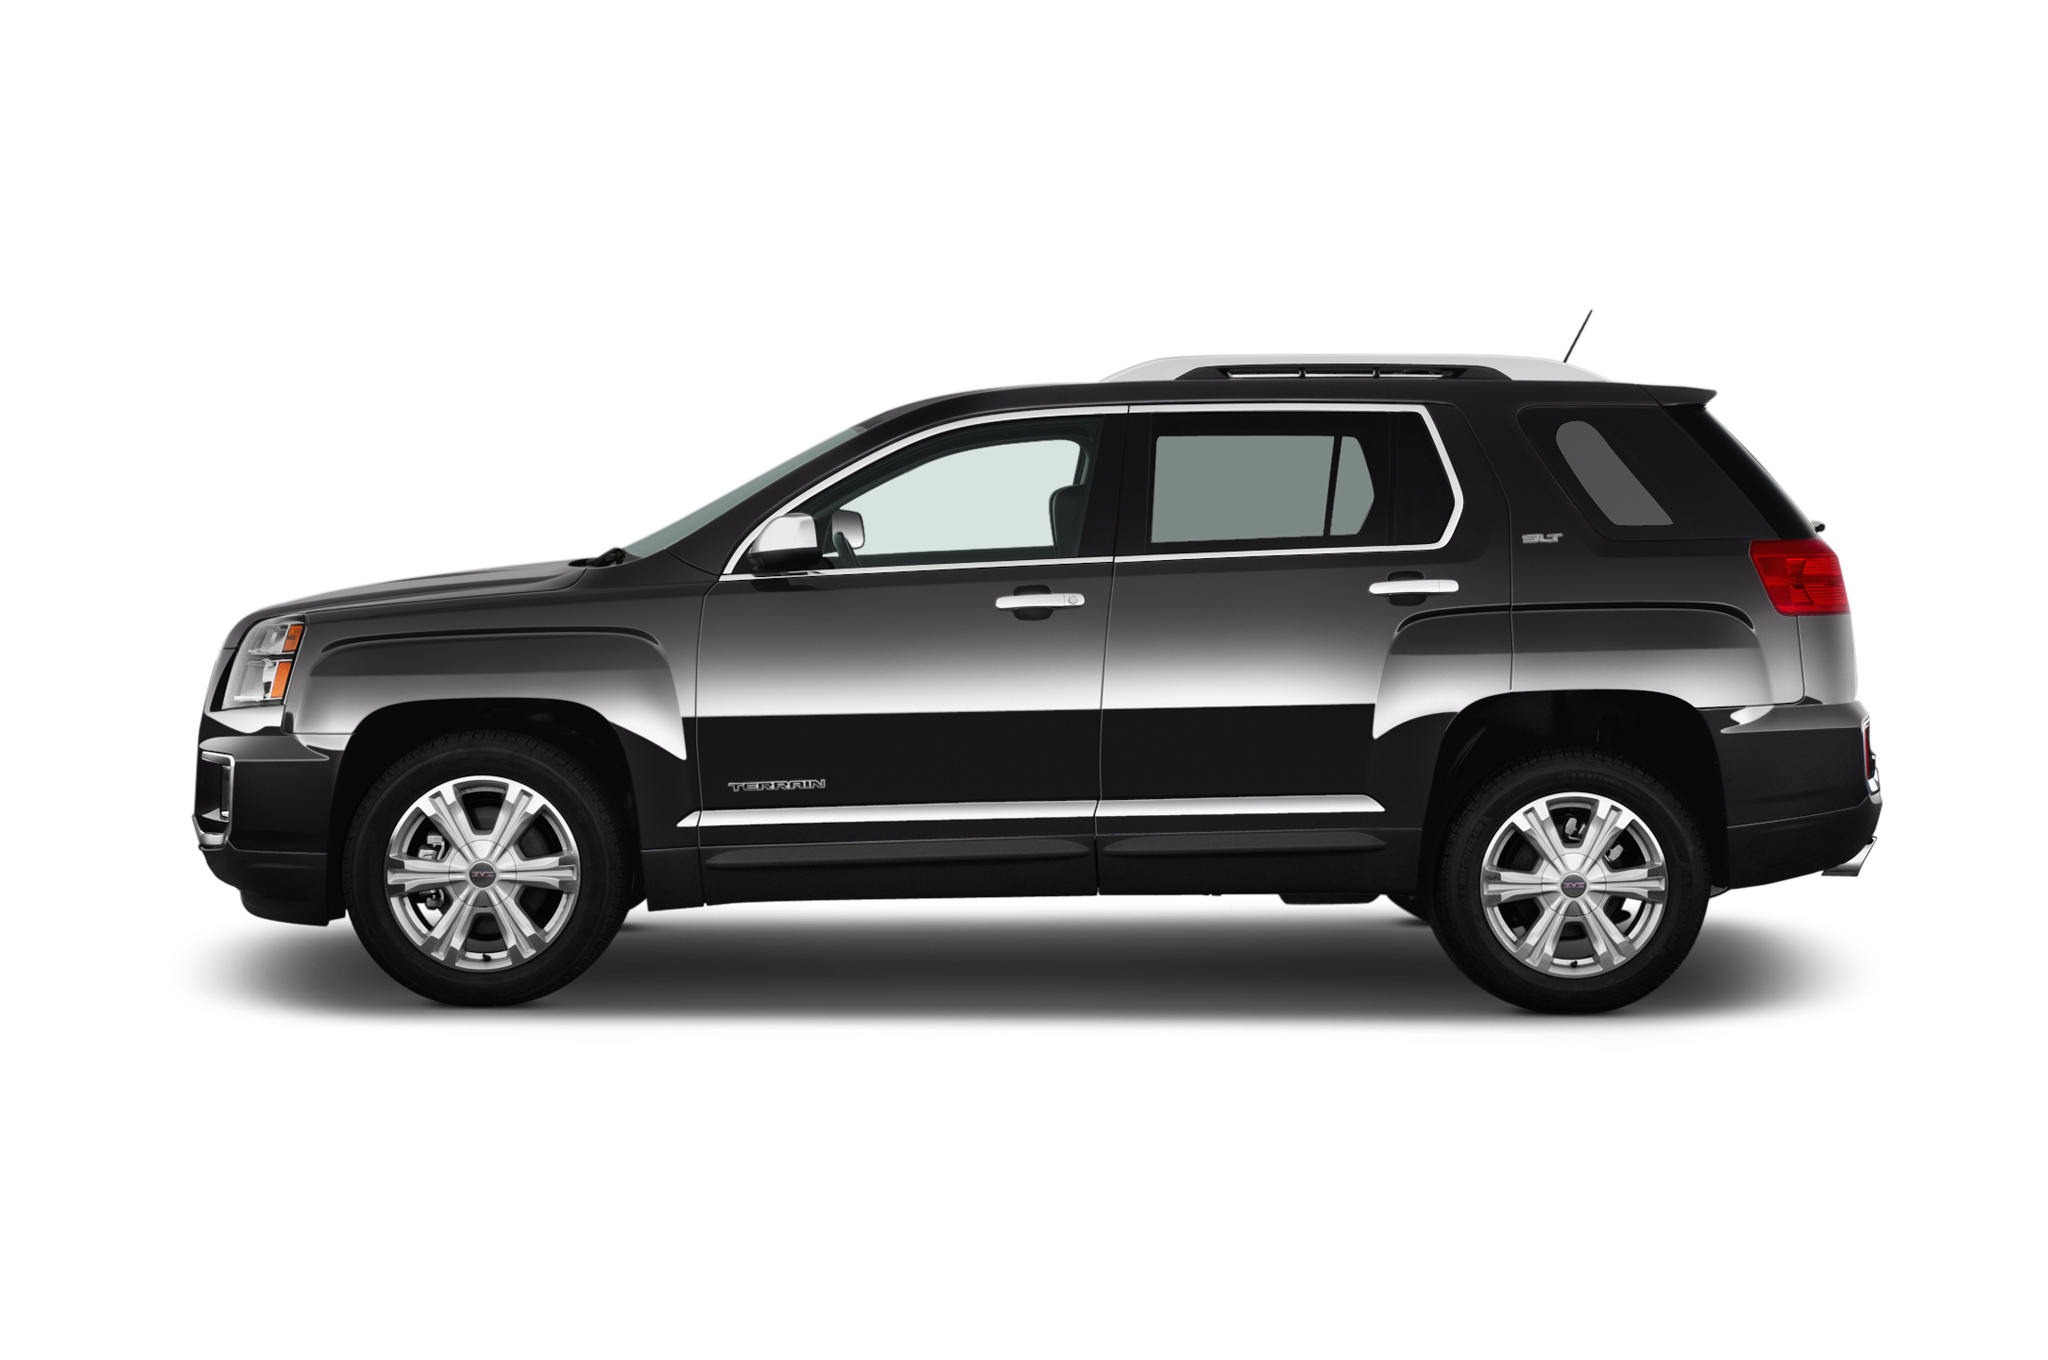 2017 GMC Terrain Adds Blacked Out Nightfall Edition